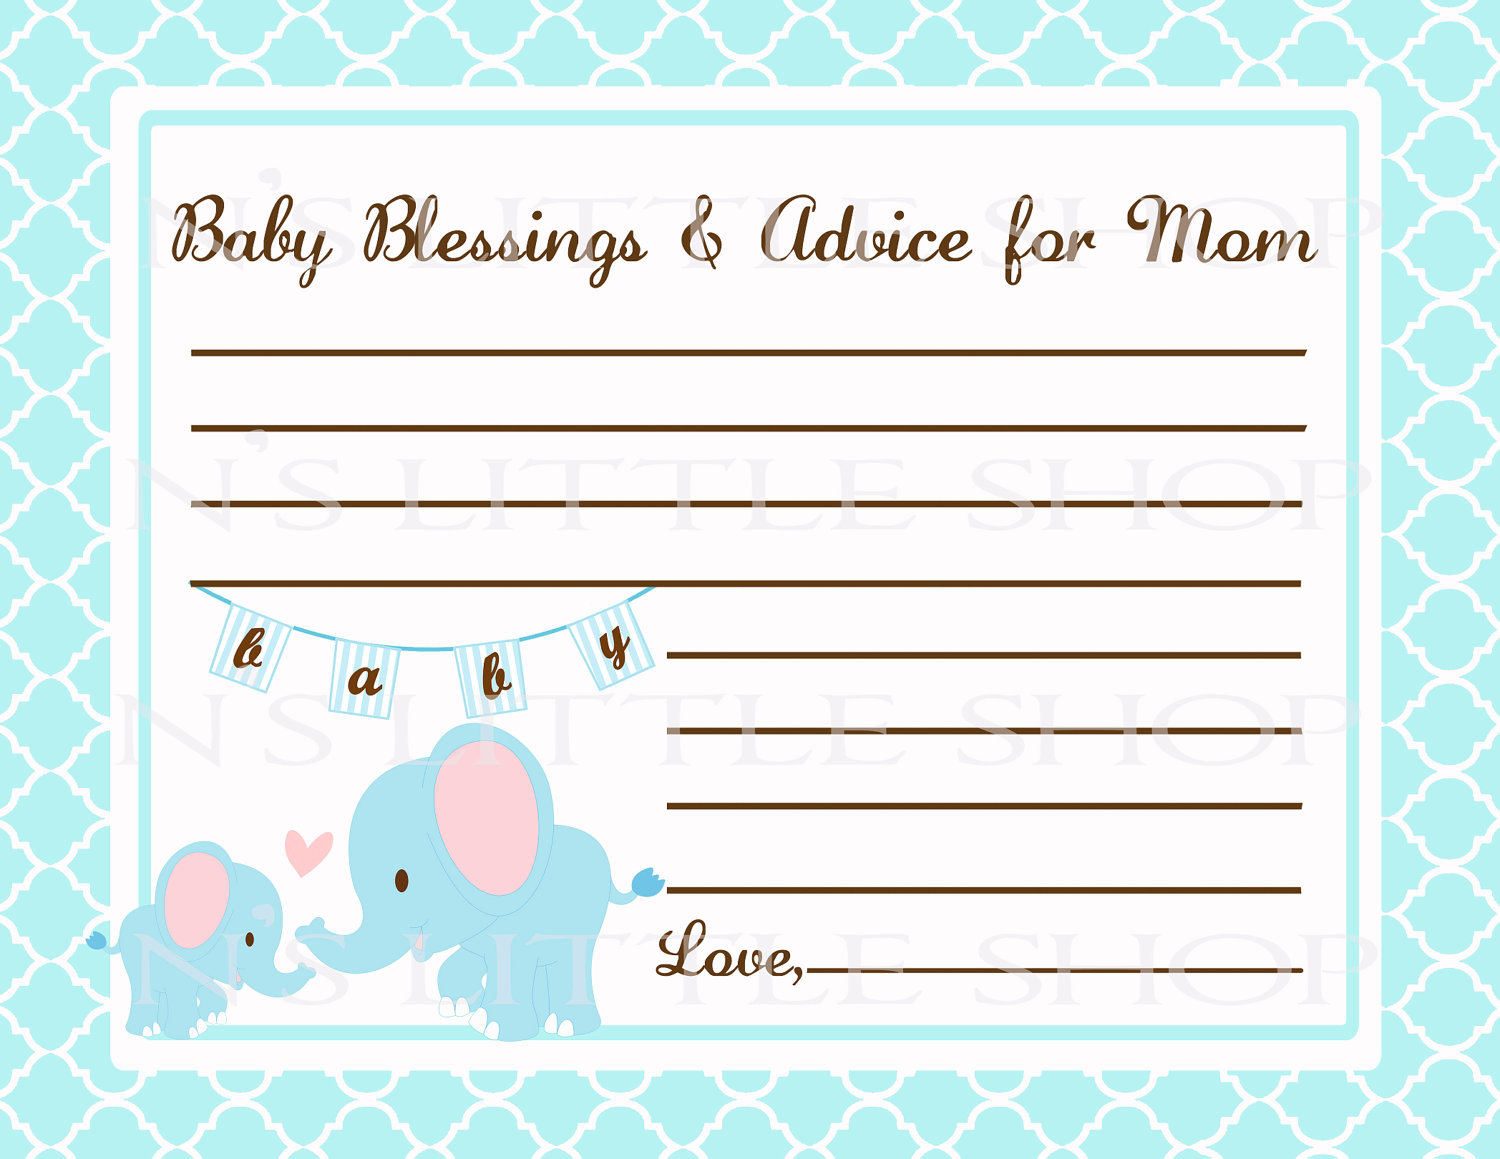 cards free printable baby shower advice cards and free printable baby